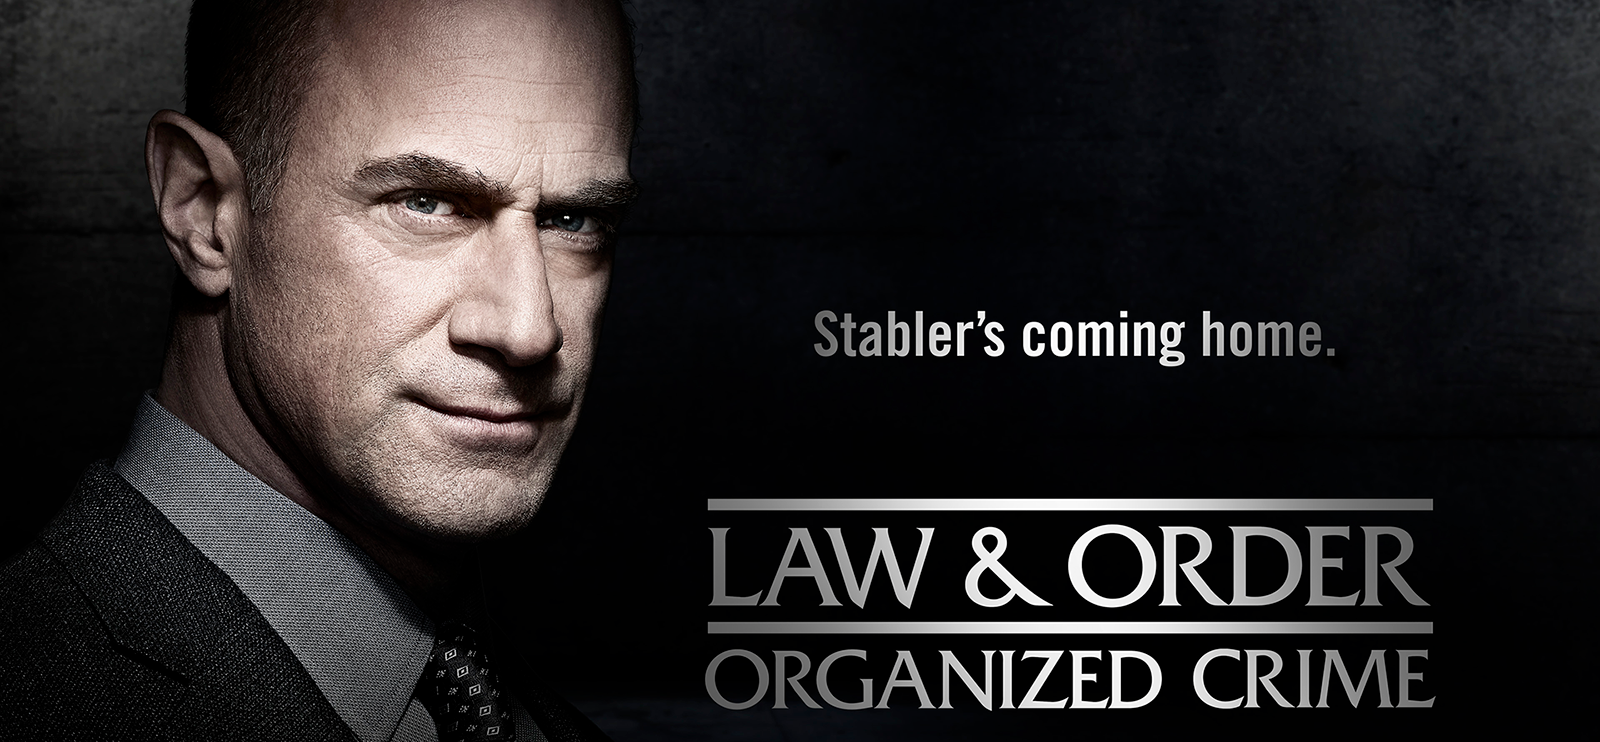 Permalink to: Law & Order: Organized Crime